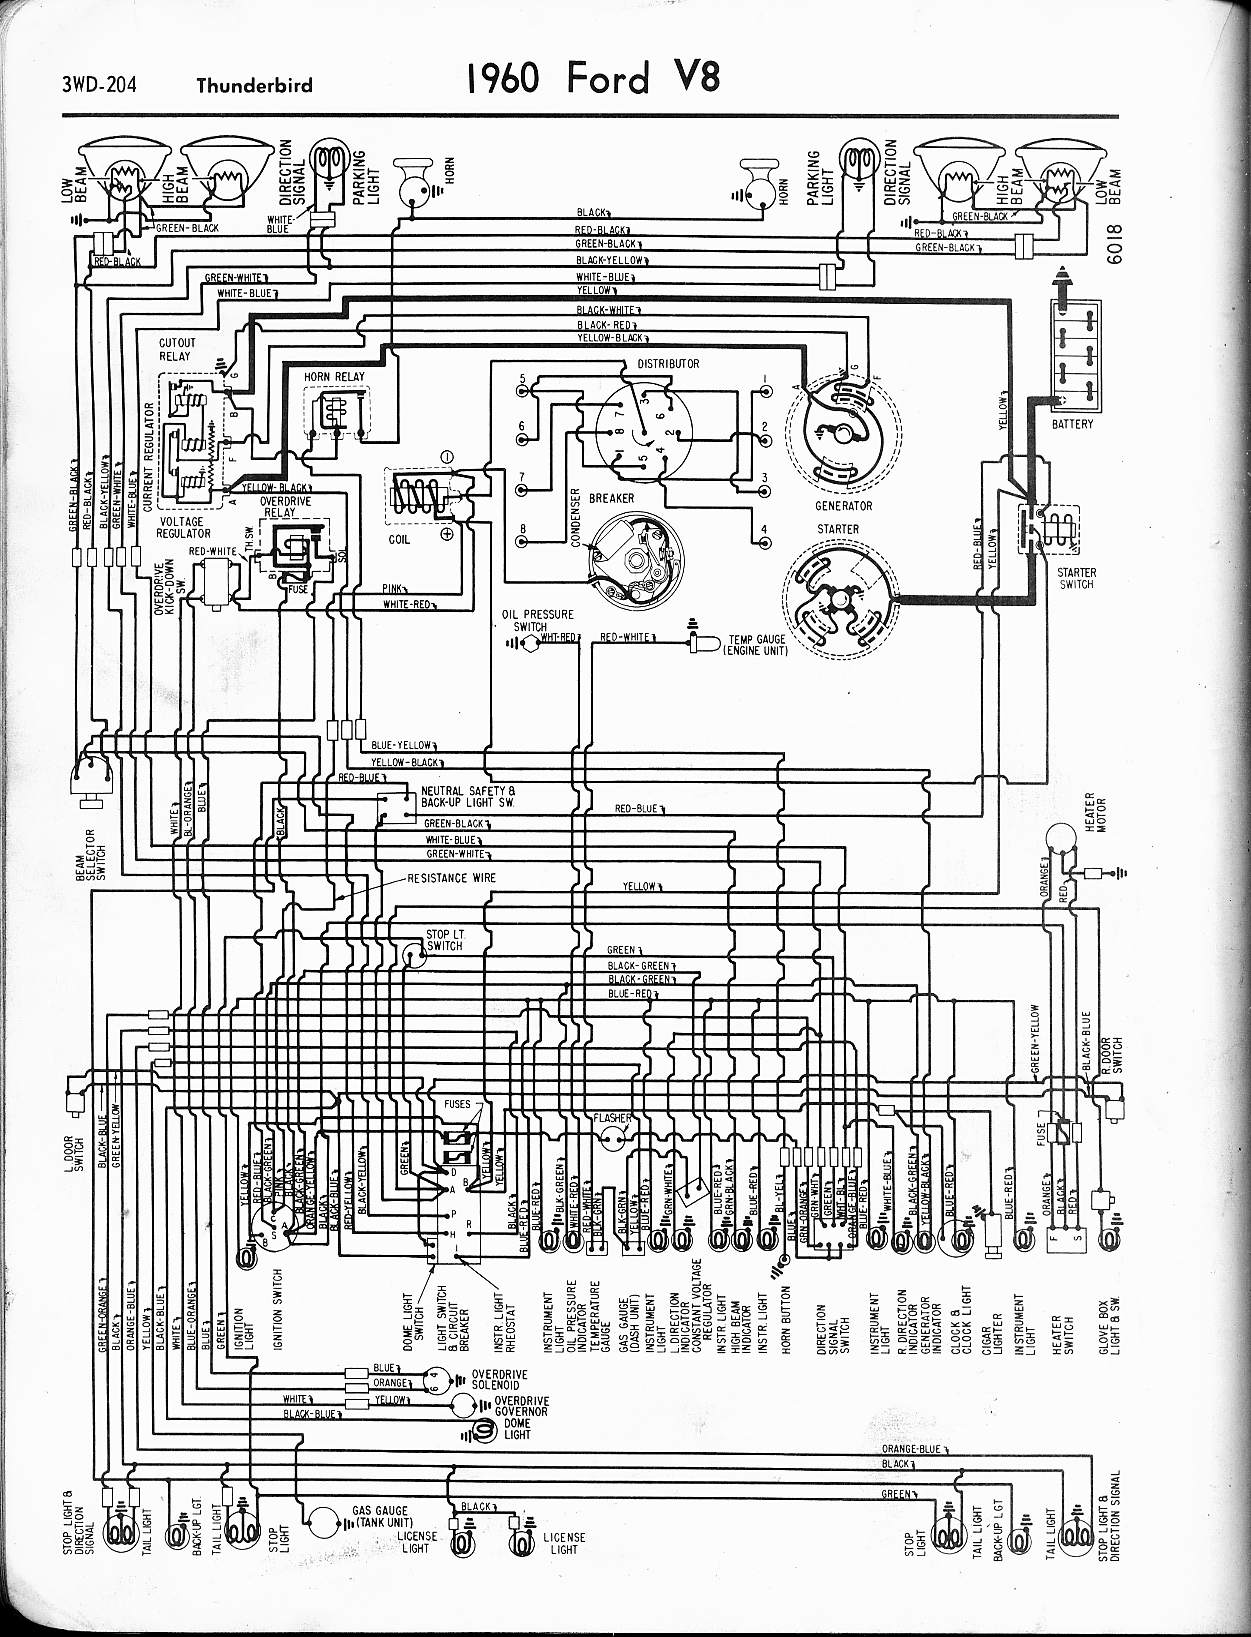 1967 Fairlane Wiring Diagram Free Archive Of Automotive Diagrams For Ford 1958 Ranchero Picture Blog About Rh Clares Driving Co Uk